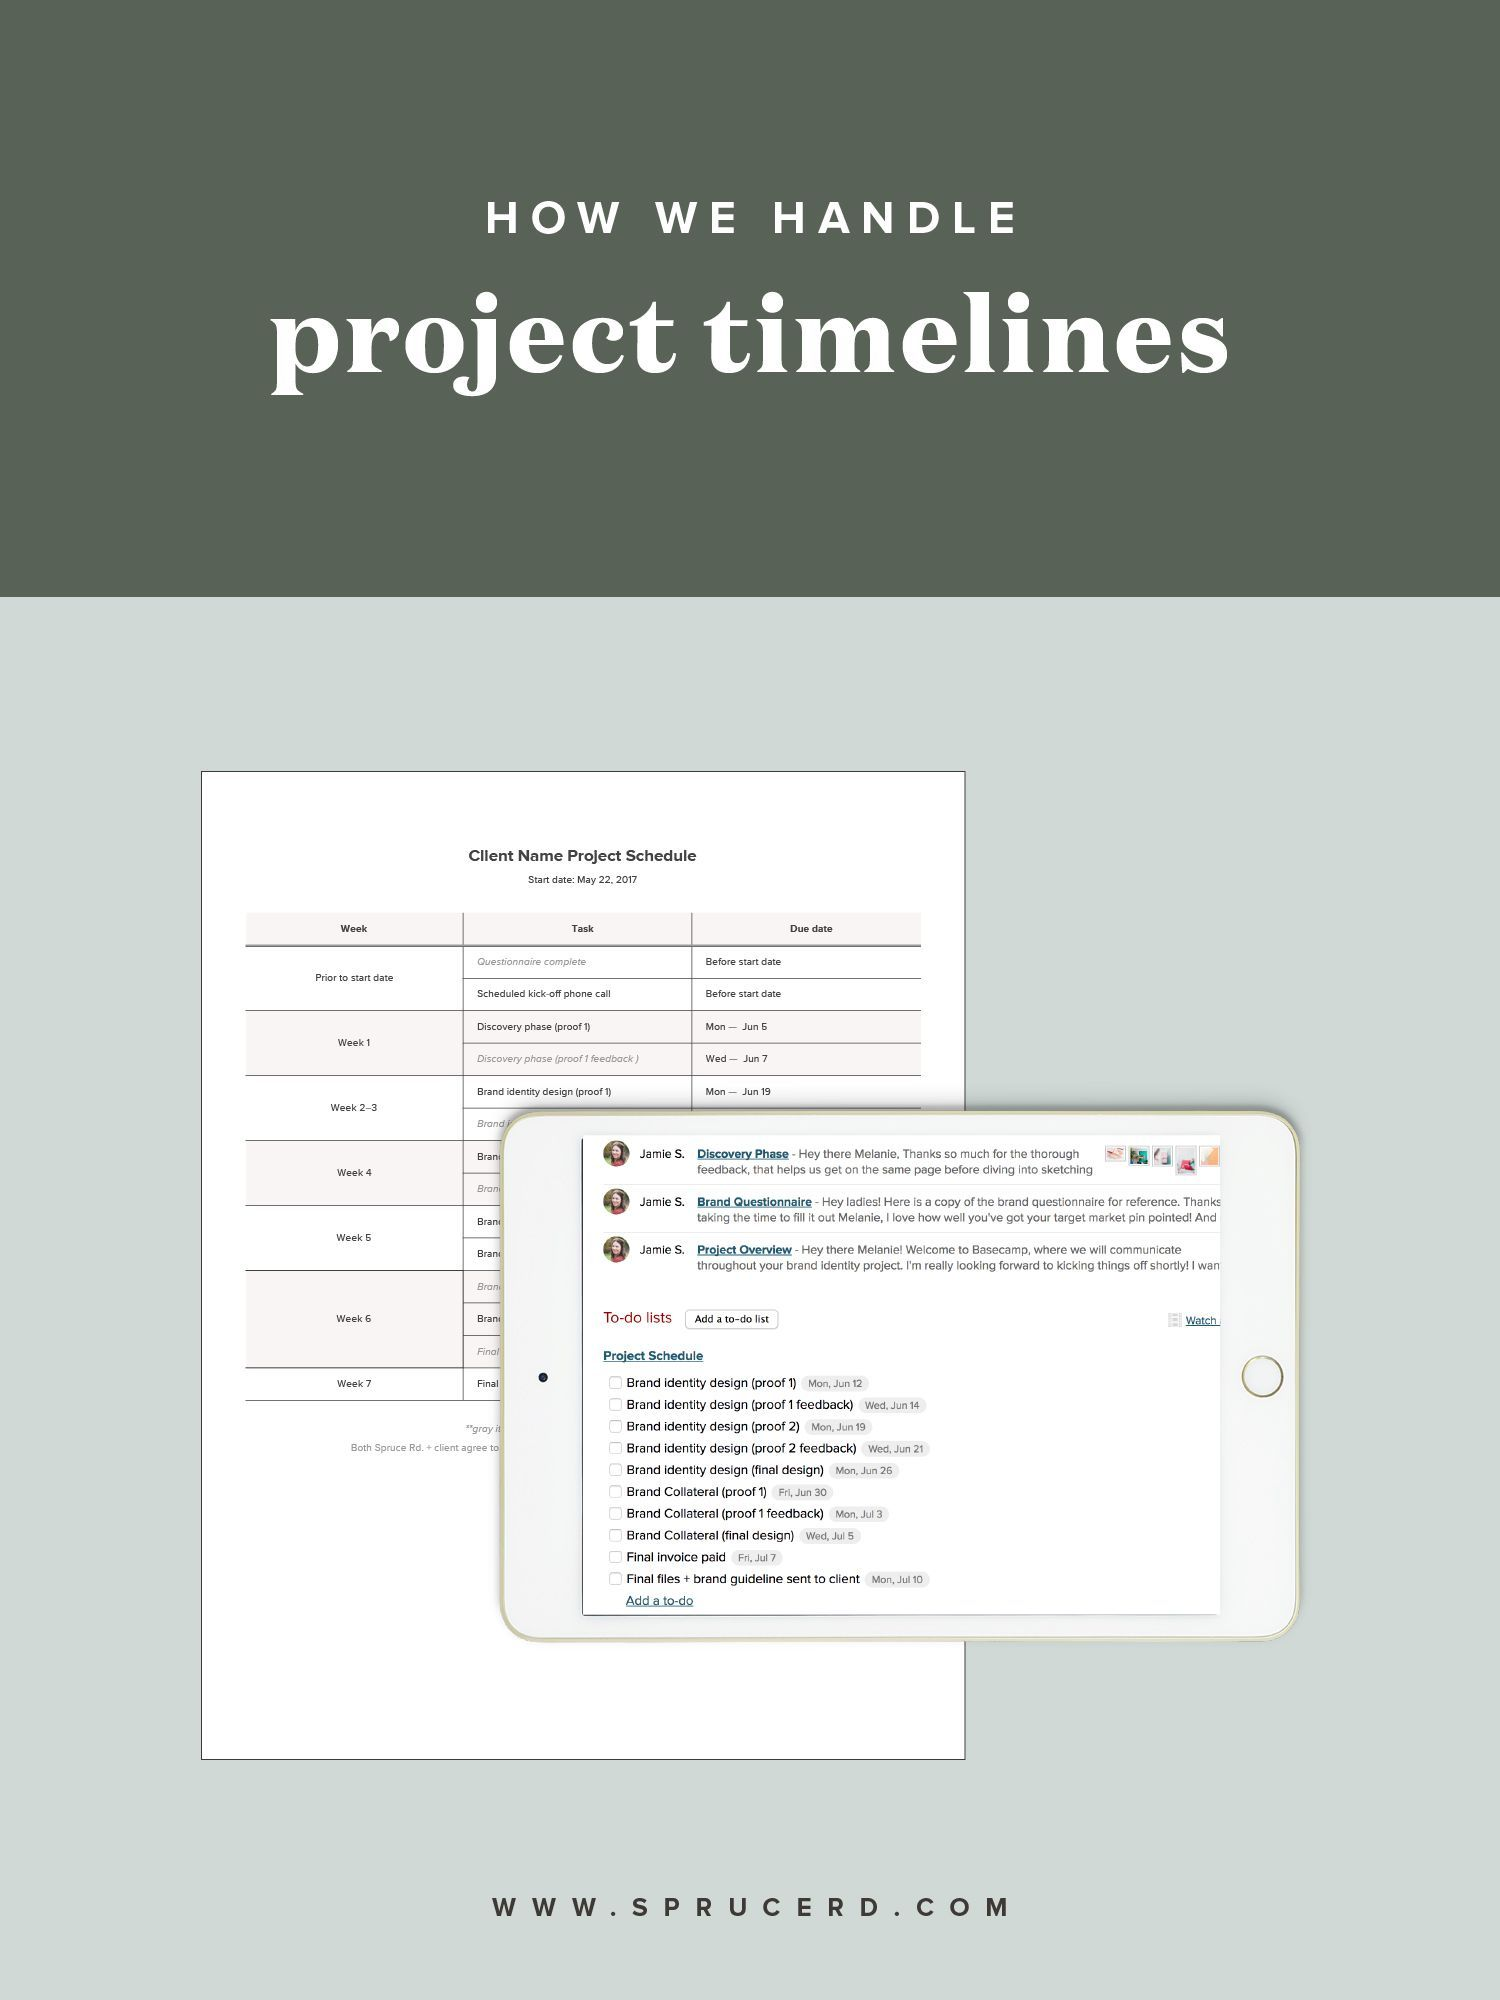 How We Handle Project Timelines  Spruce Rd  Maybe You Hit Your